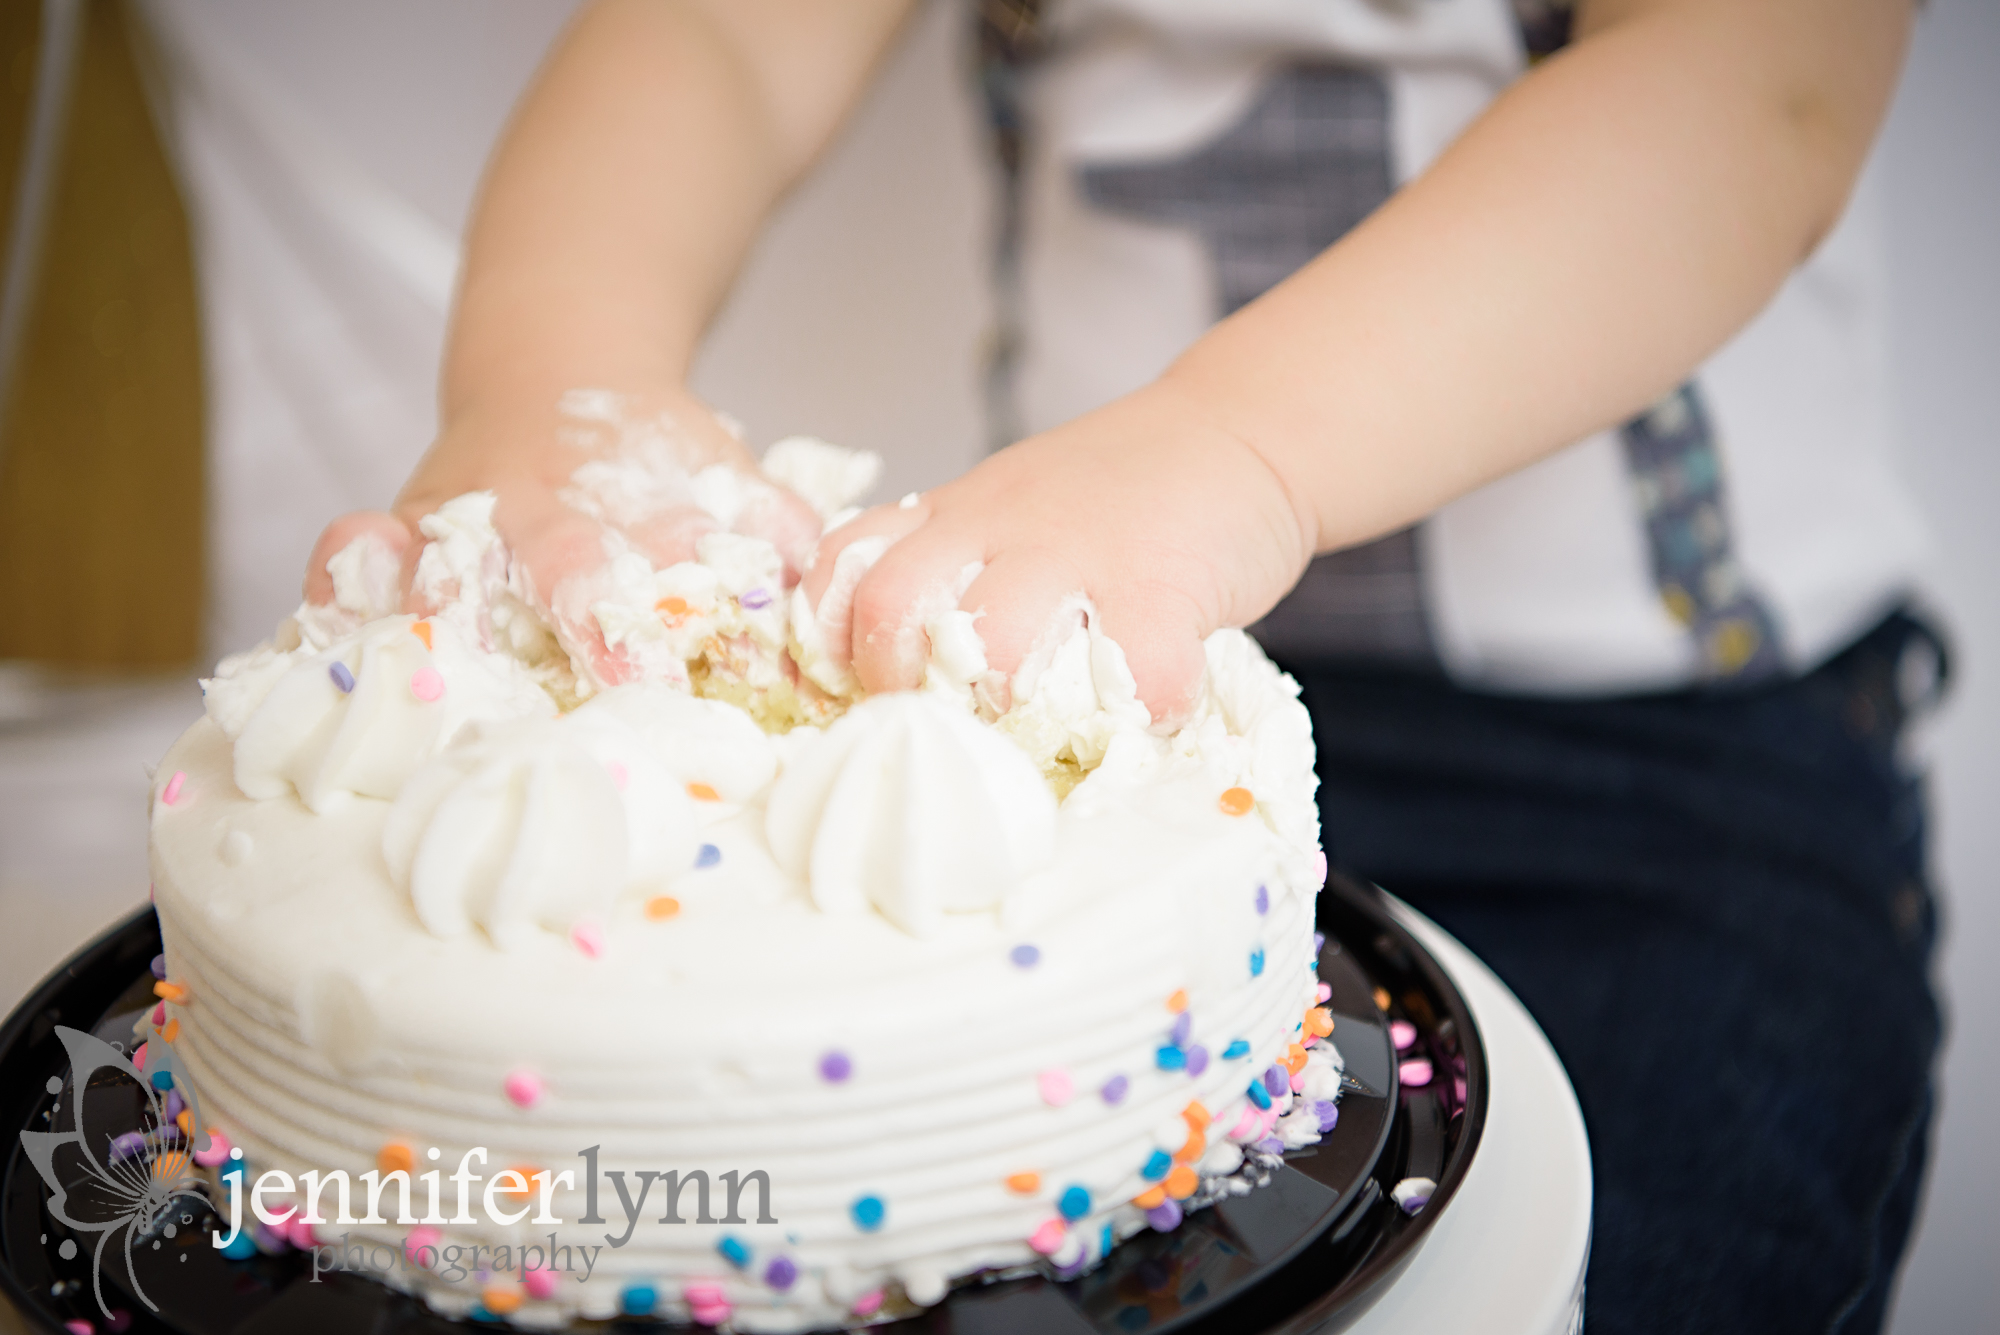 Baby Hands Digging Into Cake